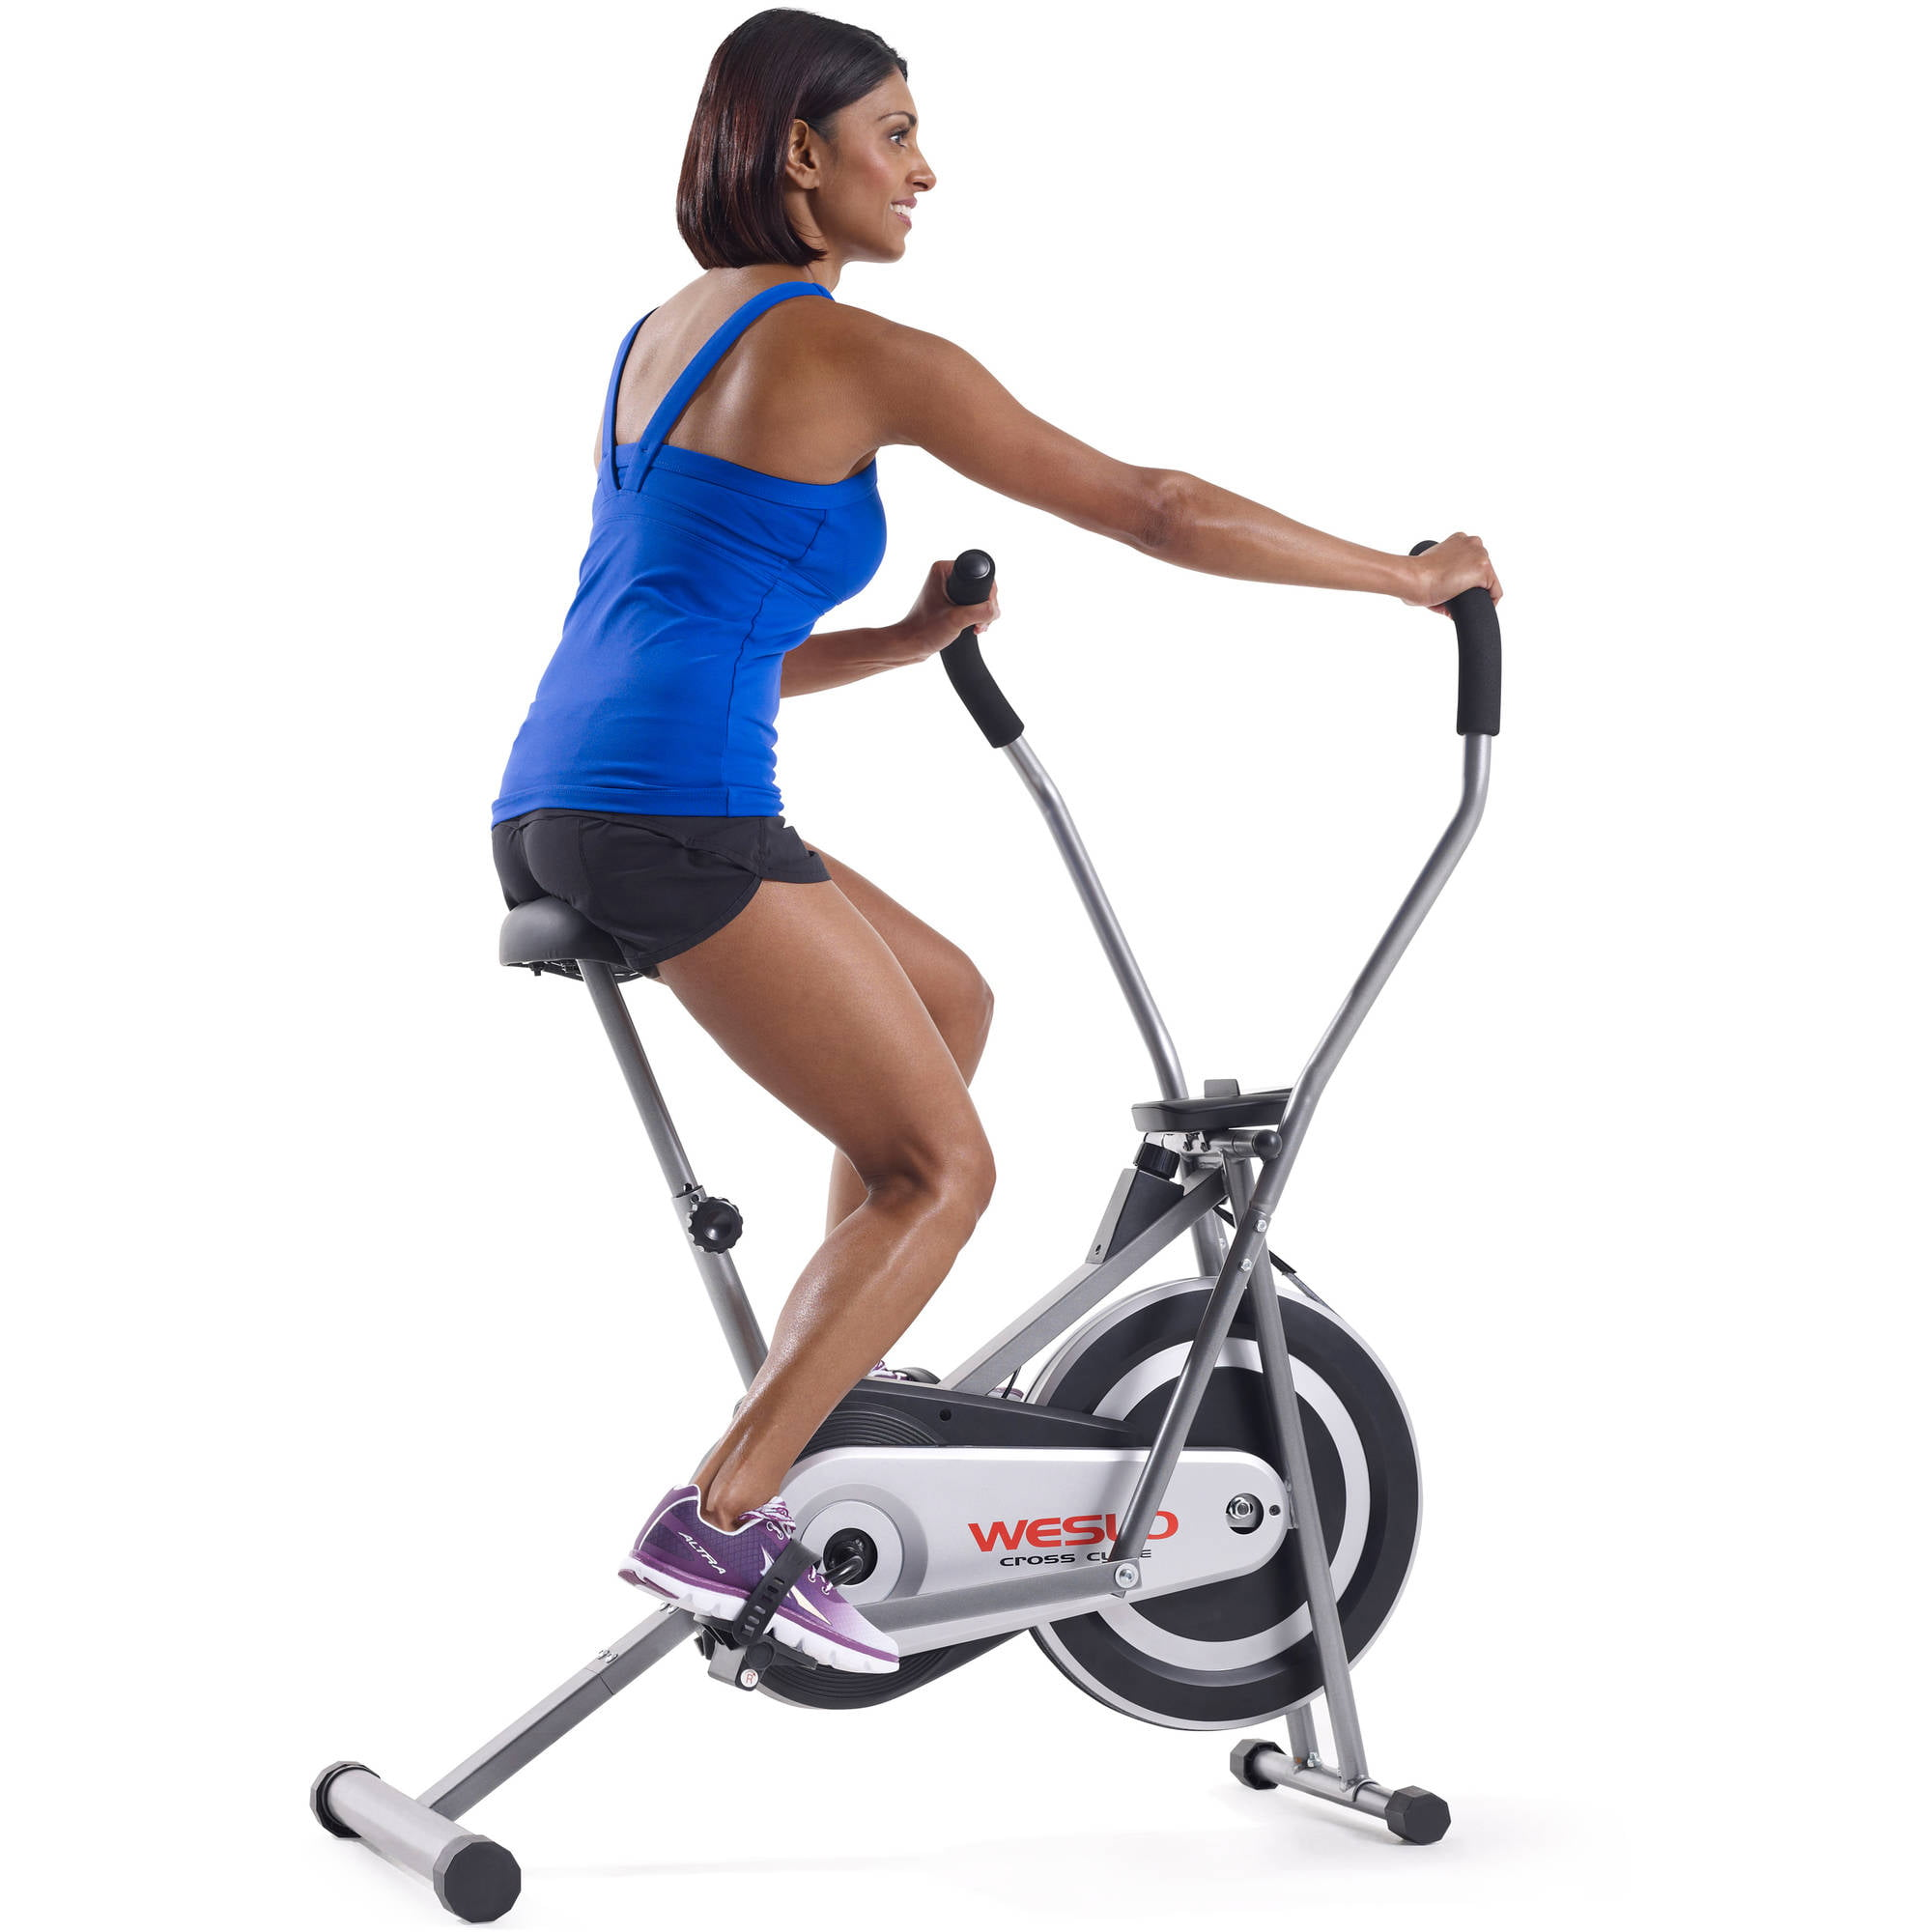 Fitleader Uf1 Fitness Bicycle Stationary Magnetic Exercise Bike